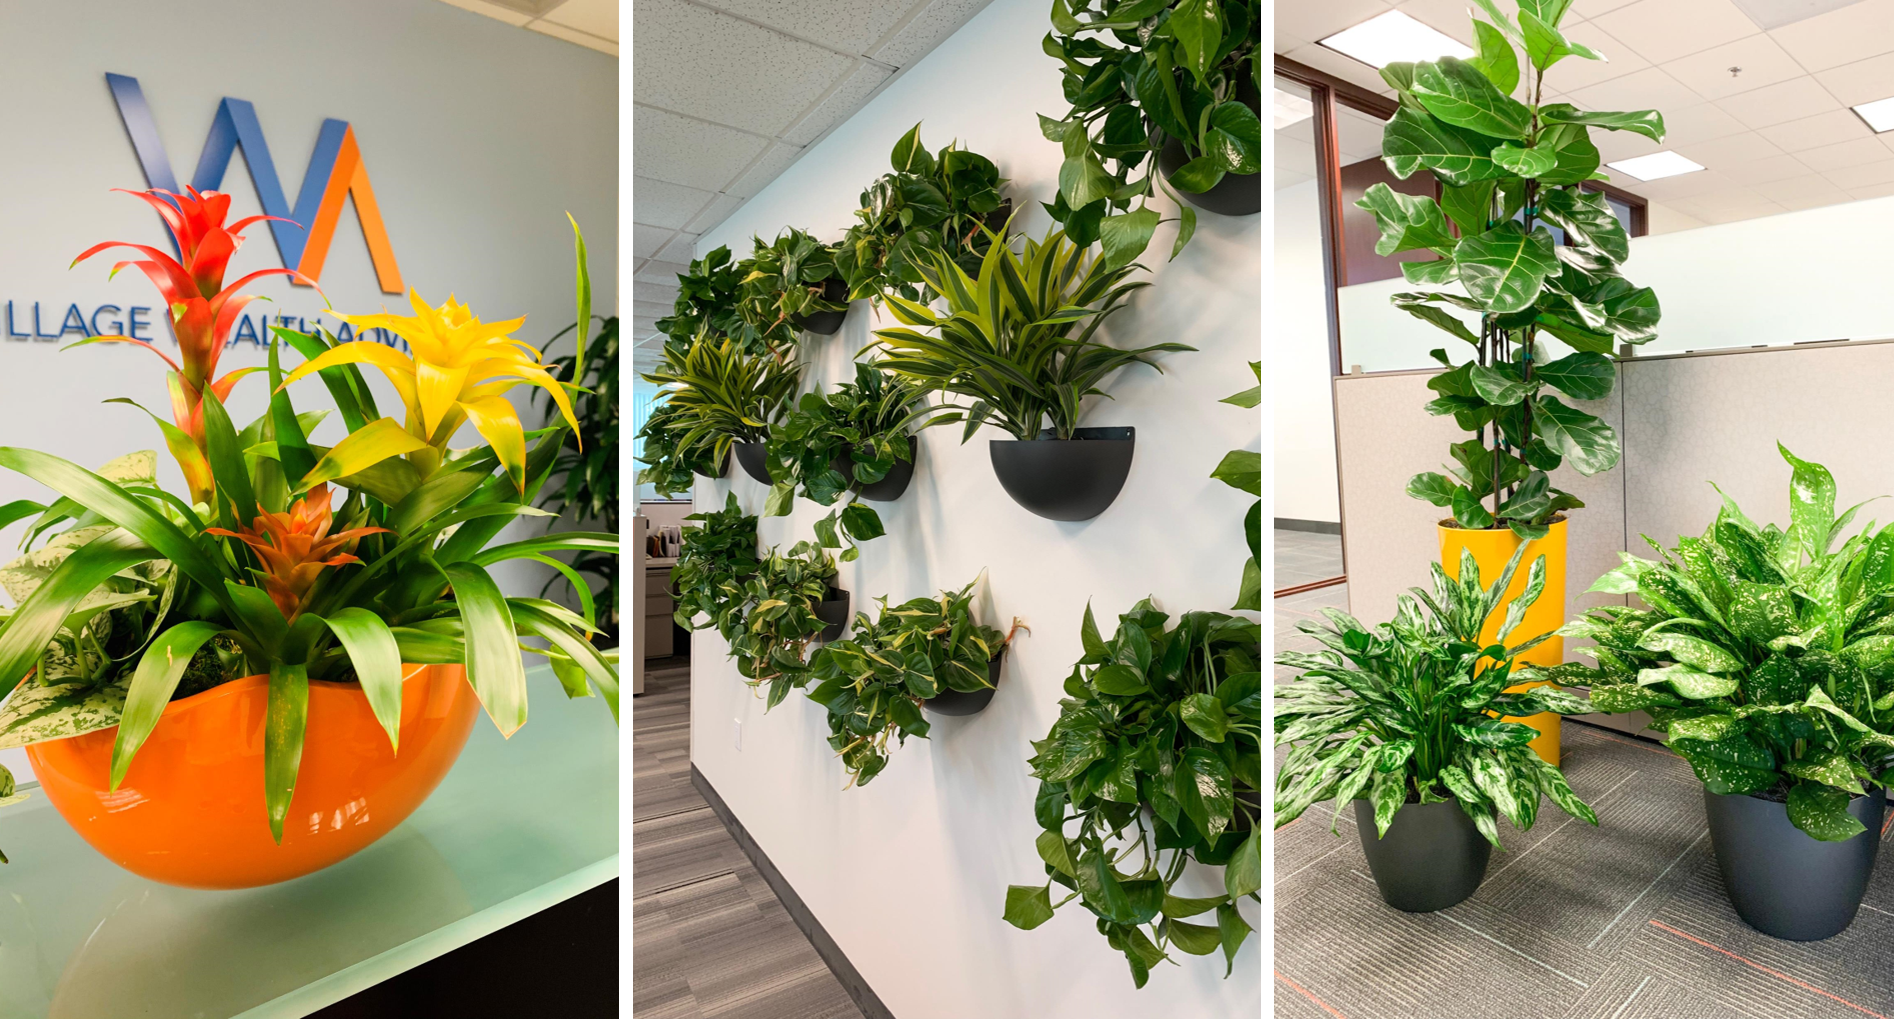 Interior office plants, plant design, plant maintenance, plant rental, office plant rental, plant lease, plant service